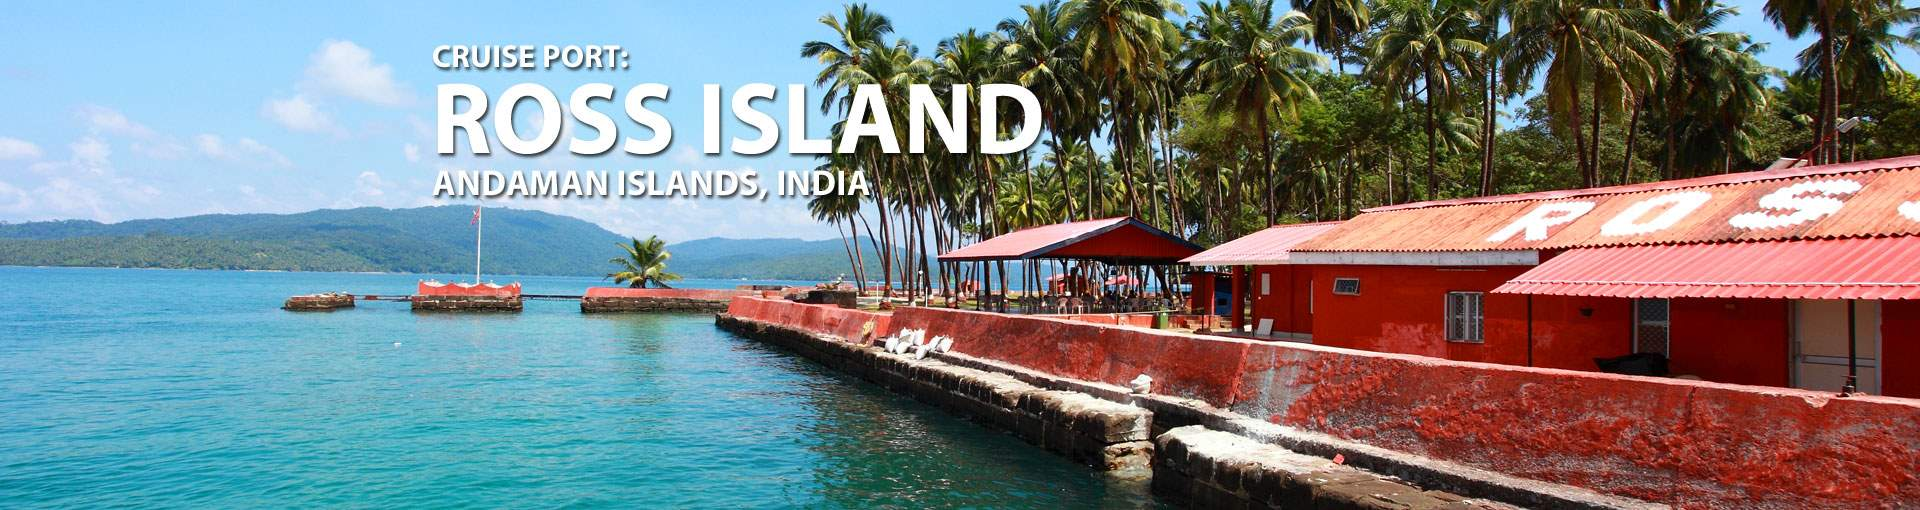 Cruises to Ross Island, Andaman Islands, India